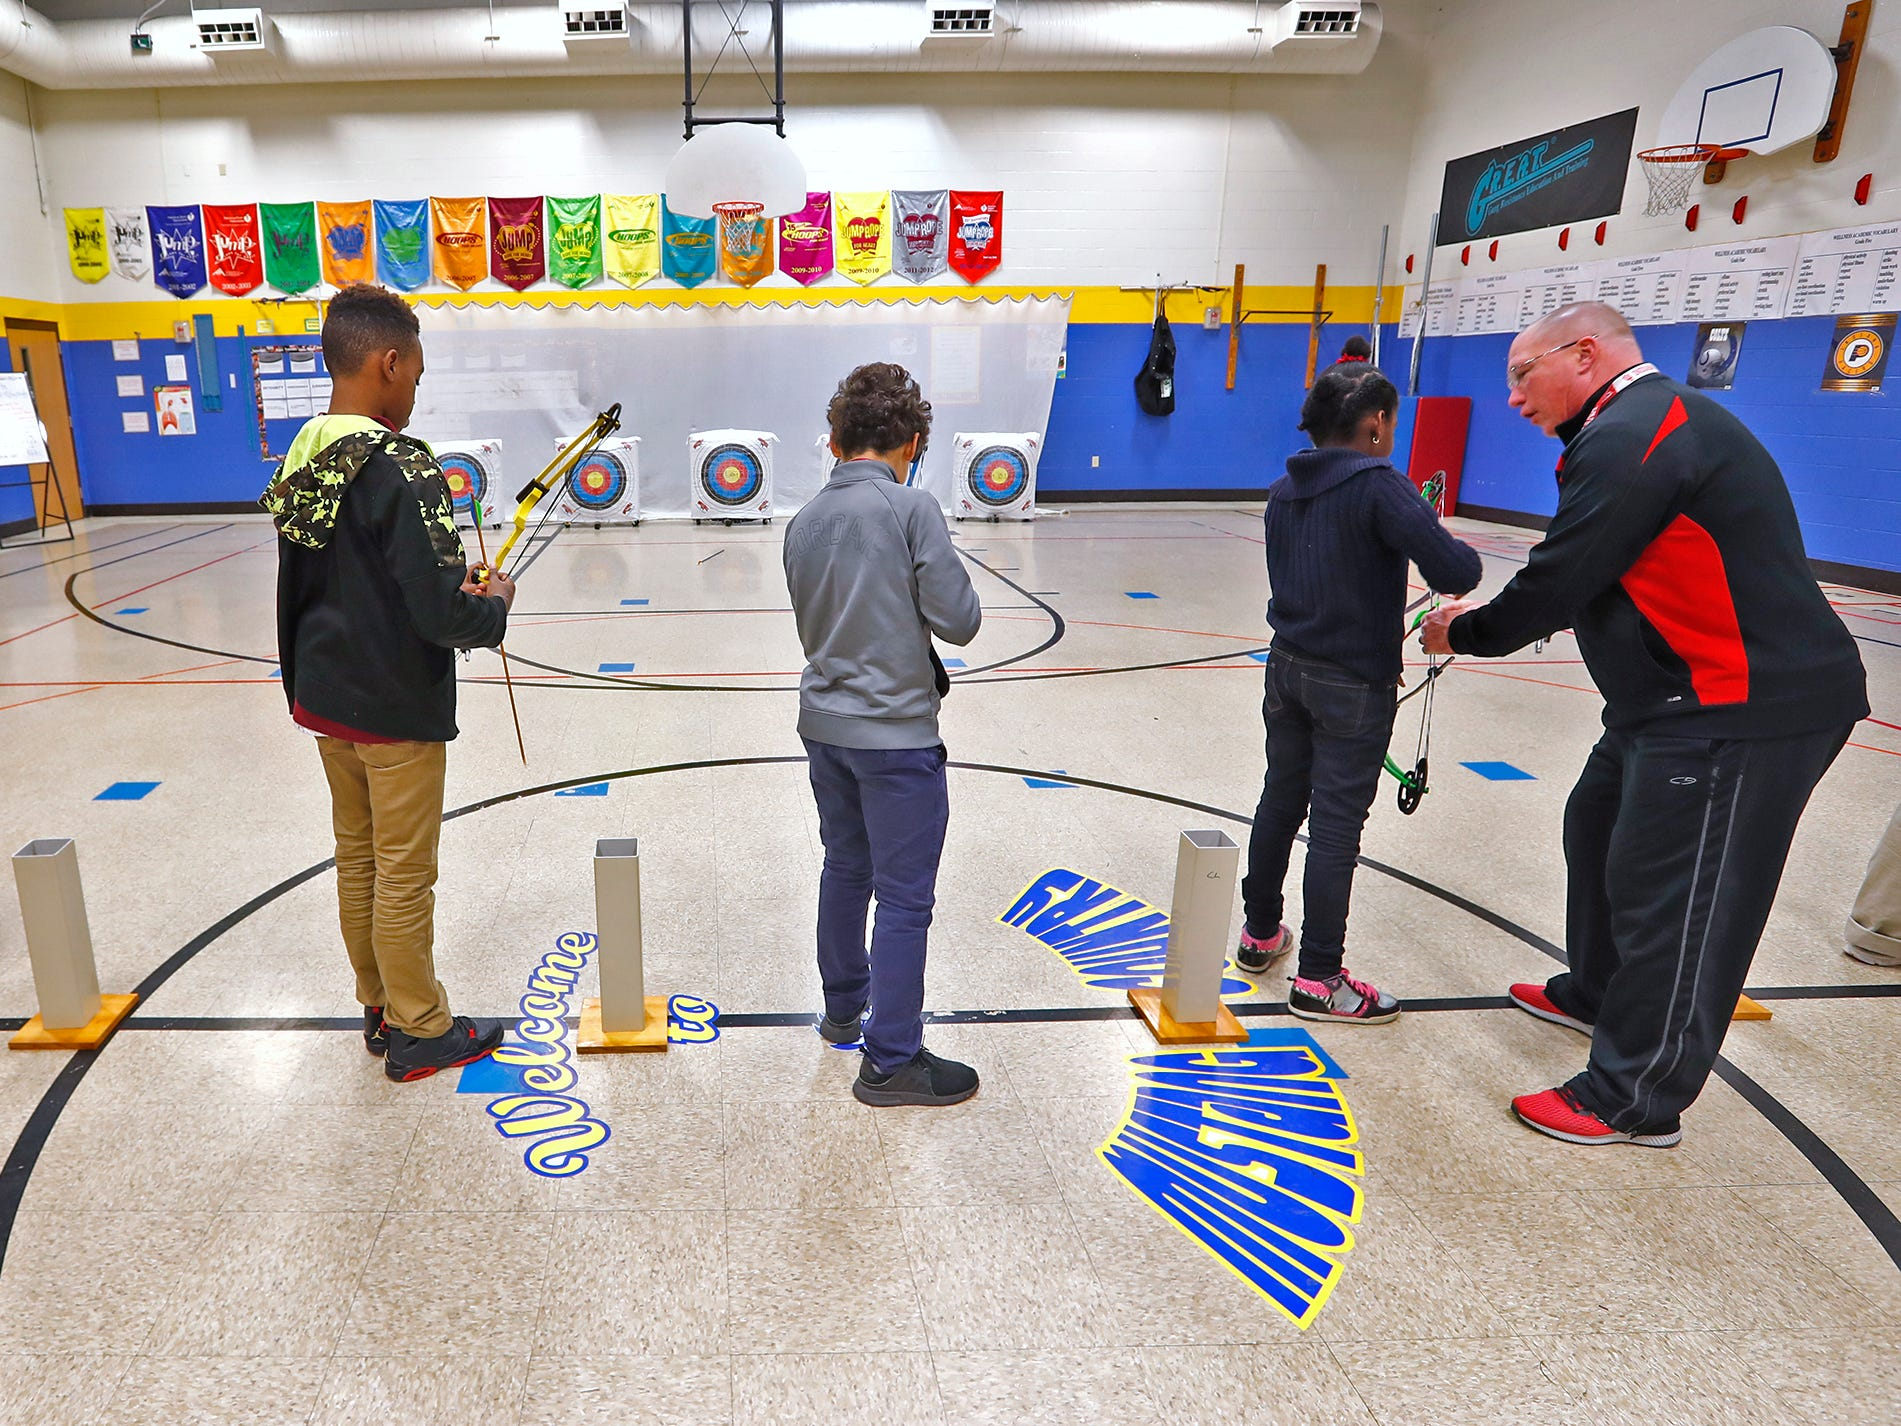 William Crawford, right, gives instruction to students ready to shoot during archery class at Lew Wallace Elementary IPS 107, Thursday, Dec. 20, 2018.